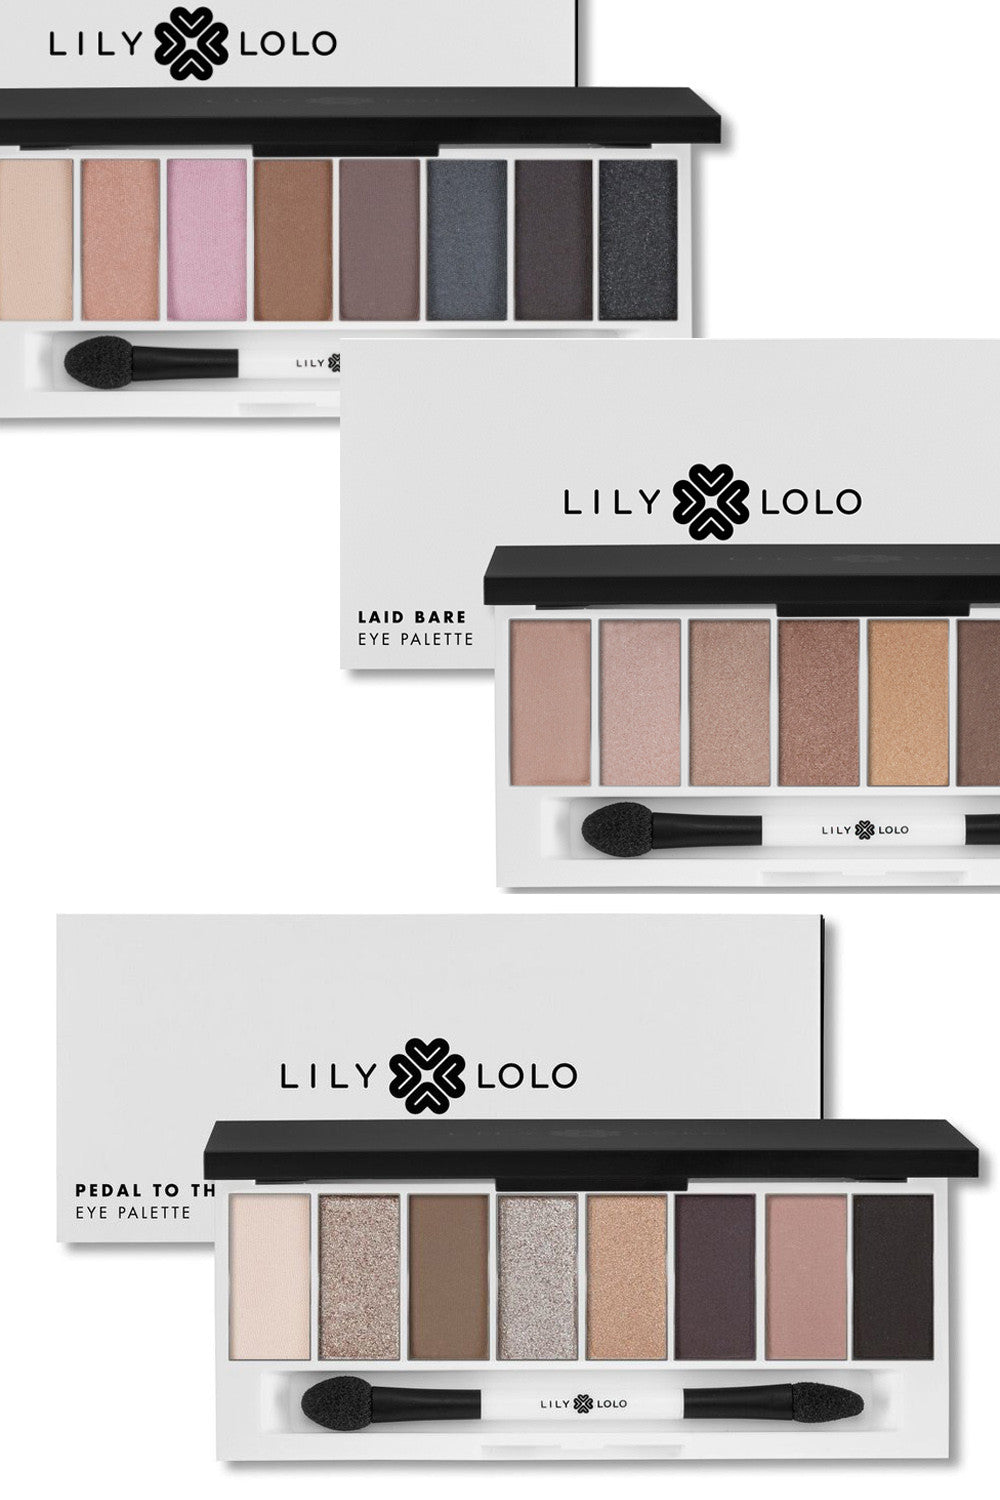 Laid Bare Eye Palette by Lily Lolo #8